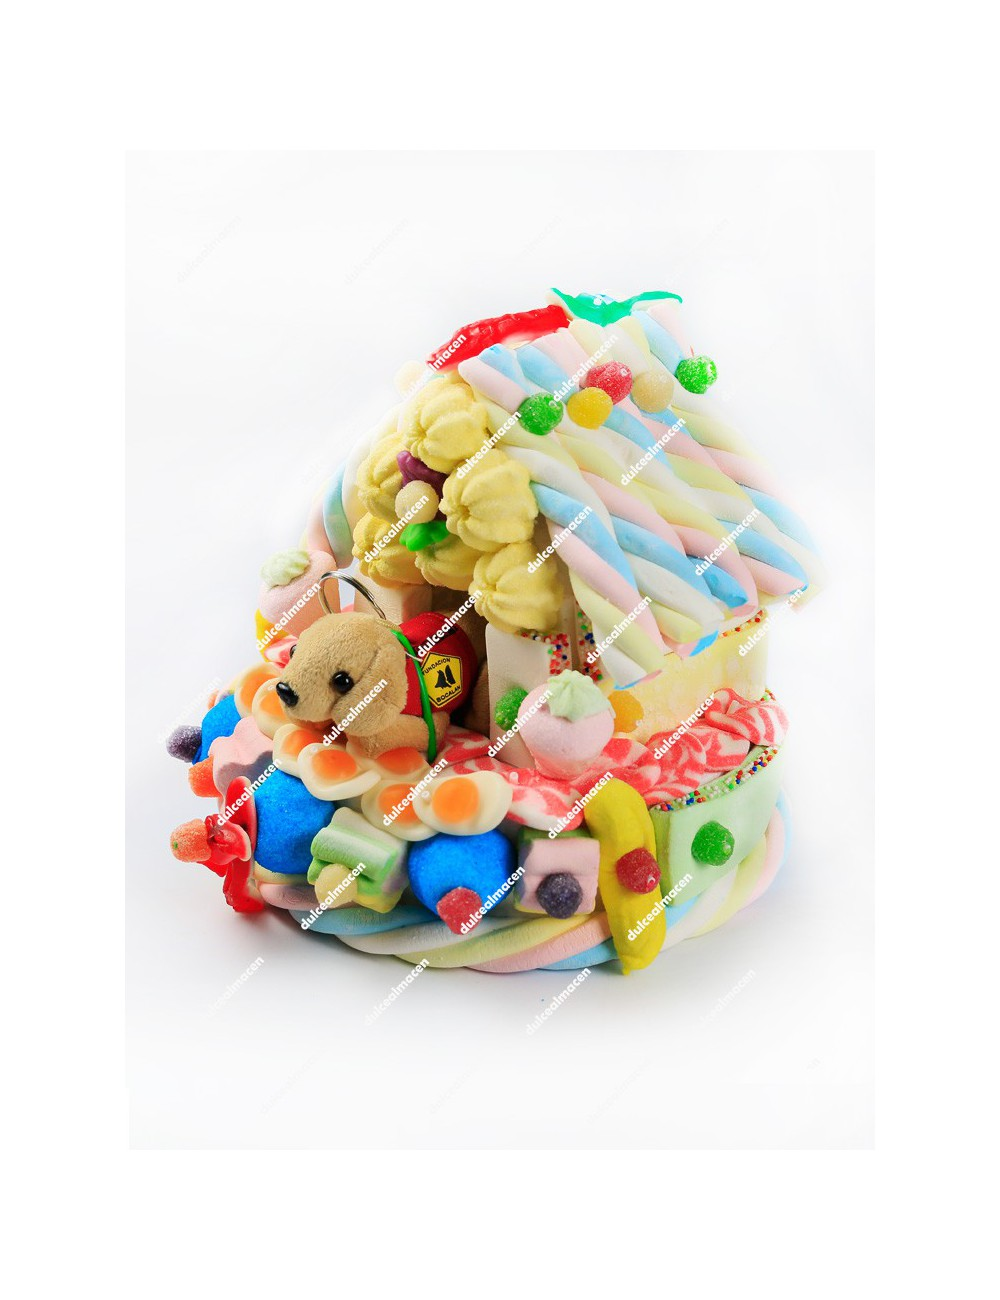 Tarta de Chuches caseta animal S5